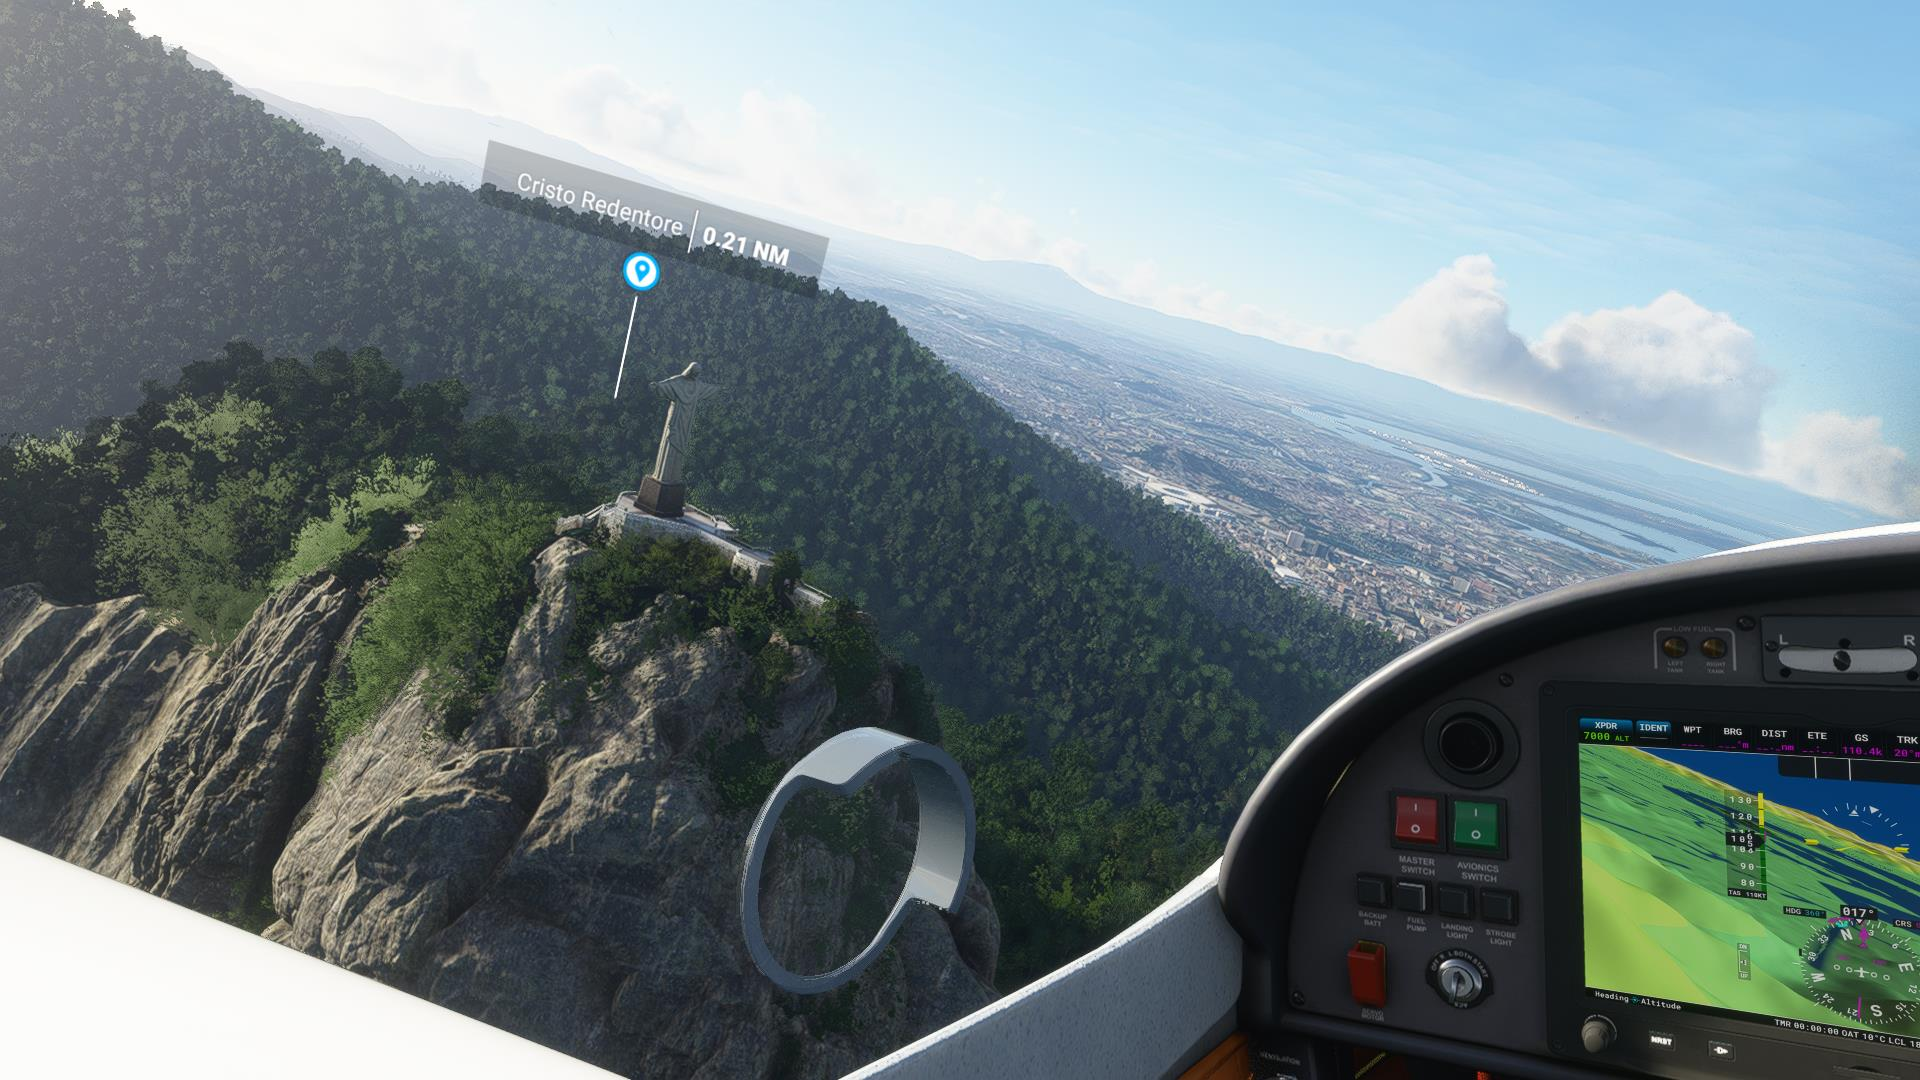 https://vivendobyte.blob.core.windows.net/57793/Microsoft Flight Simulator 13_01_2021 19_57_29.jpg